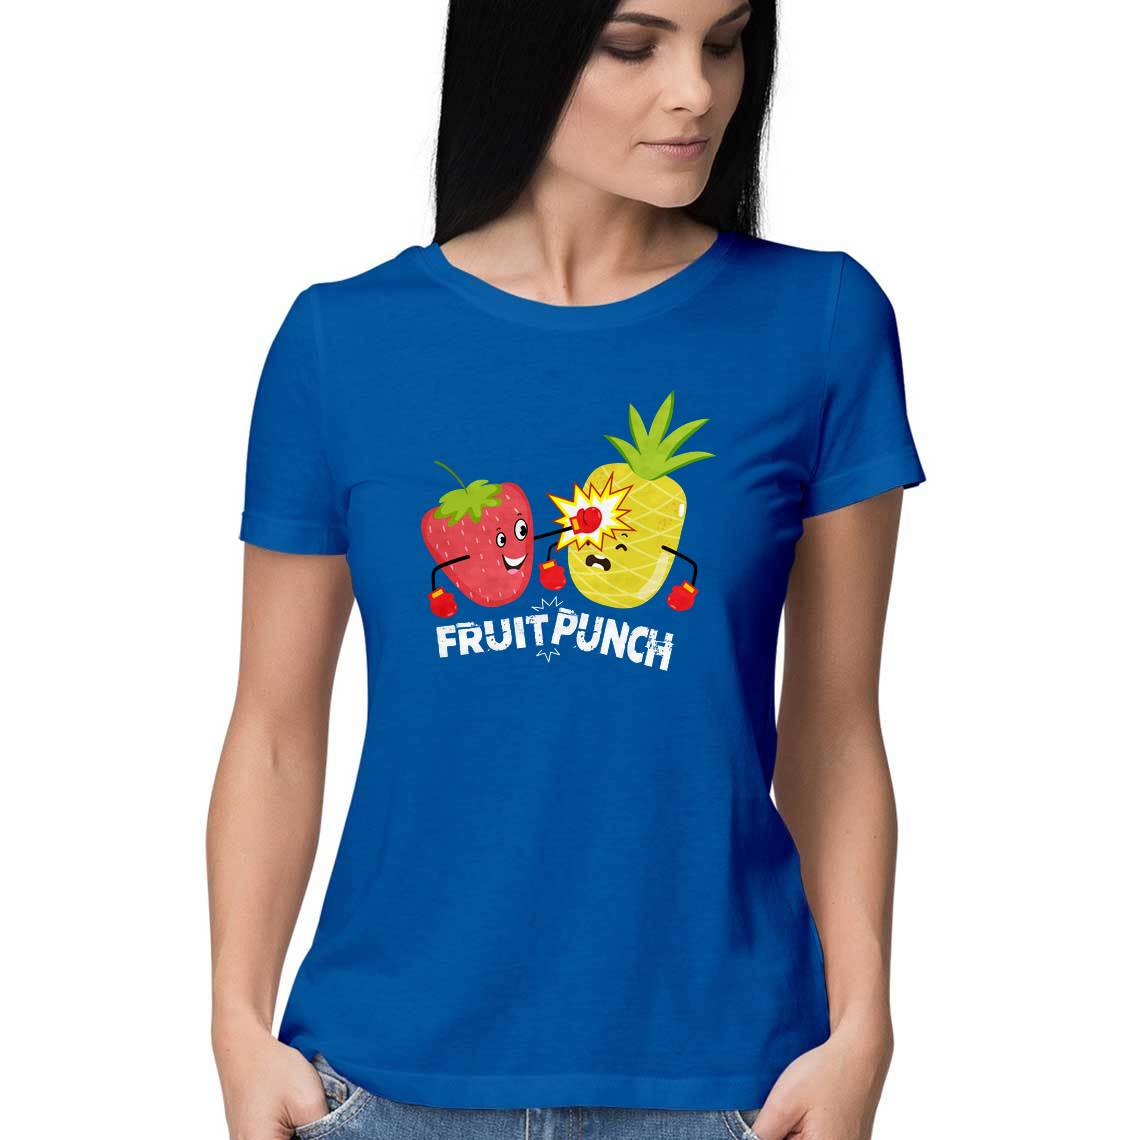 Fruit Punch | Women's Half Sleeve T-shirt